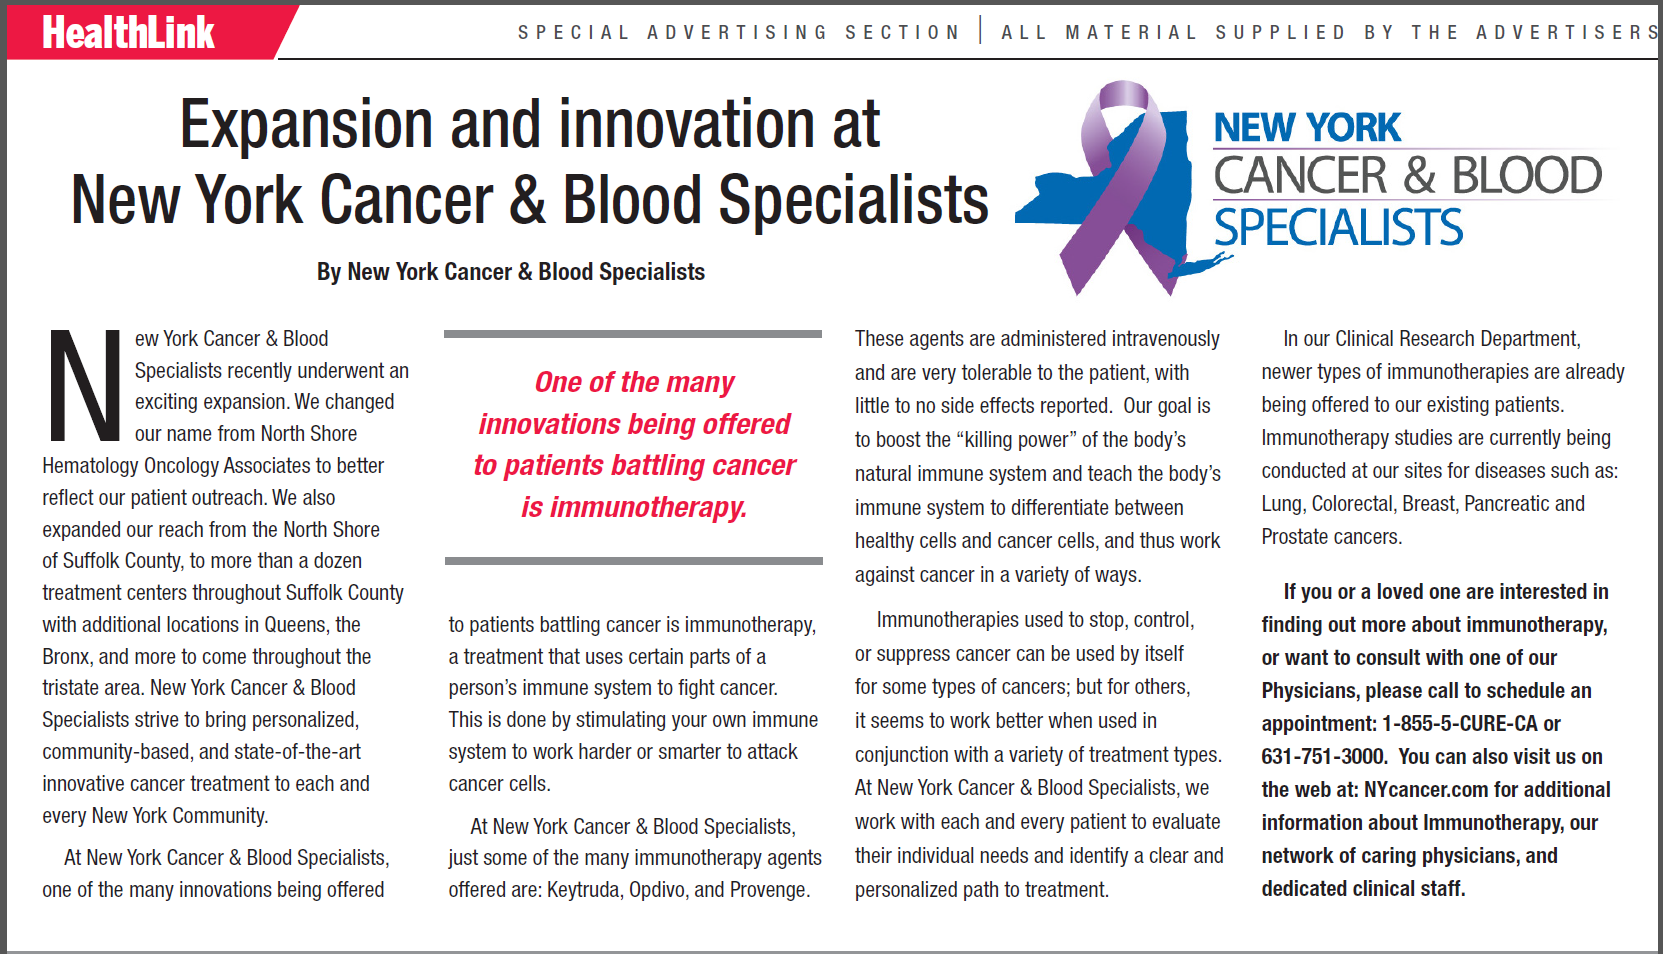 Expansion and Innovation at New York Cancer & Blood Specialists Post Image